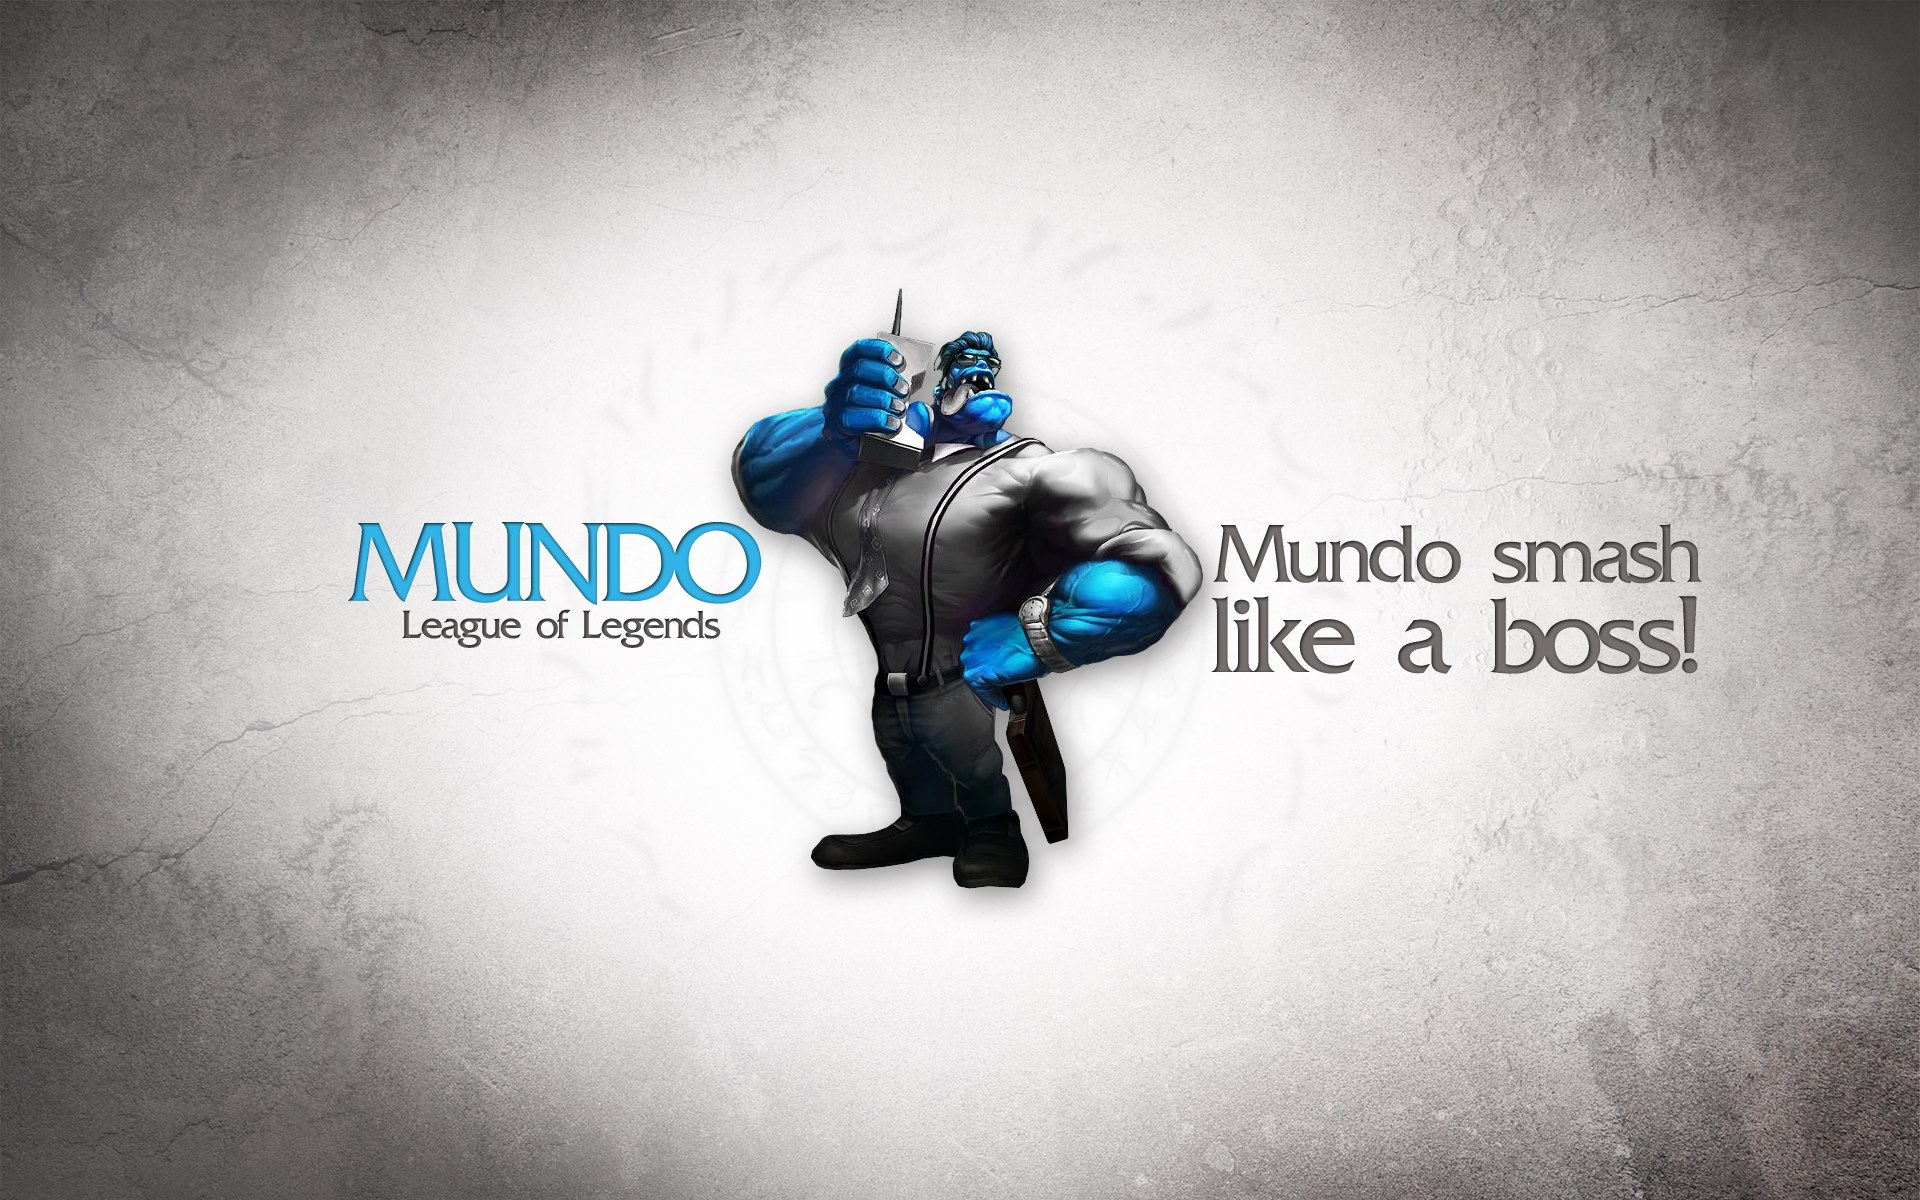 Corporate Dr. Mundo wallpaper